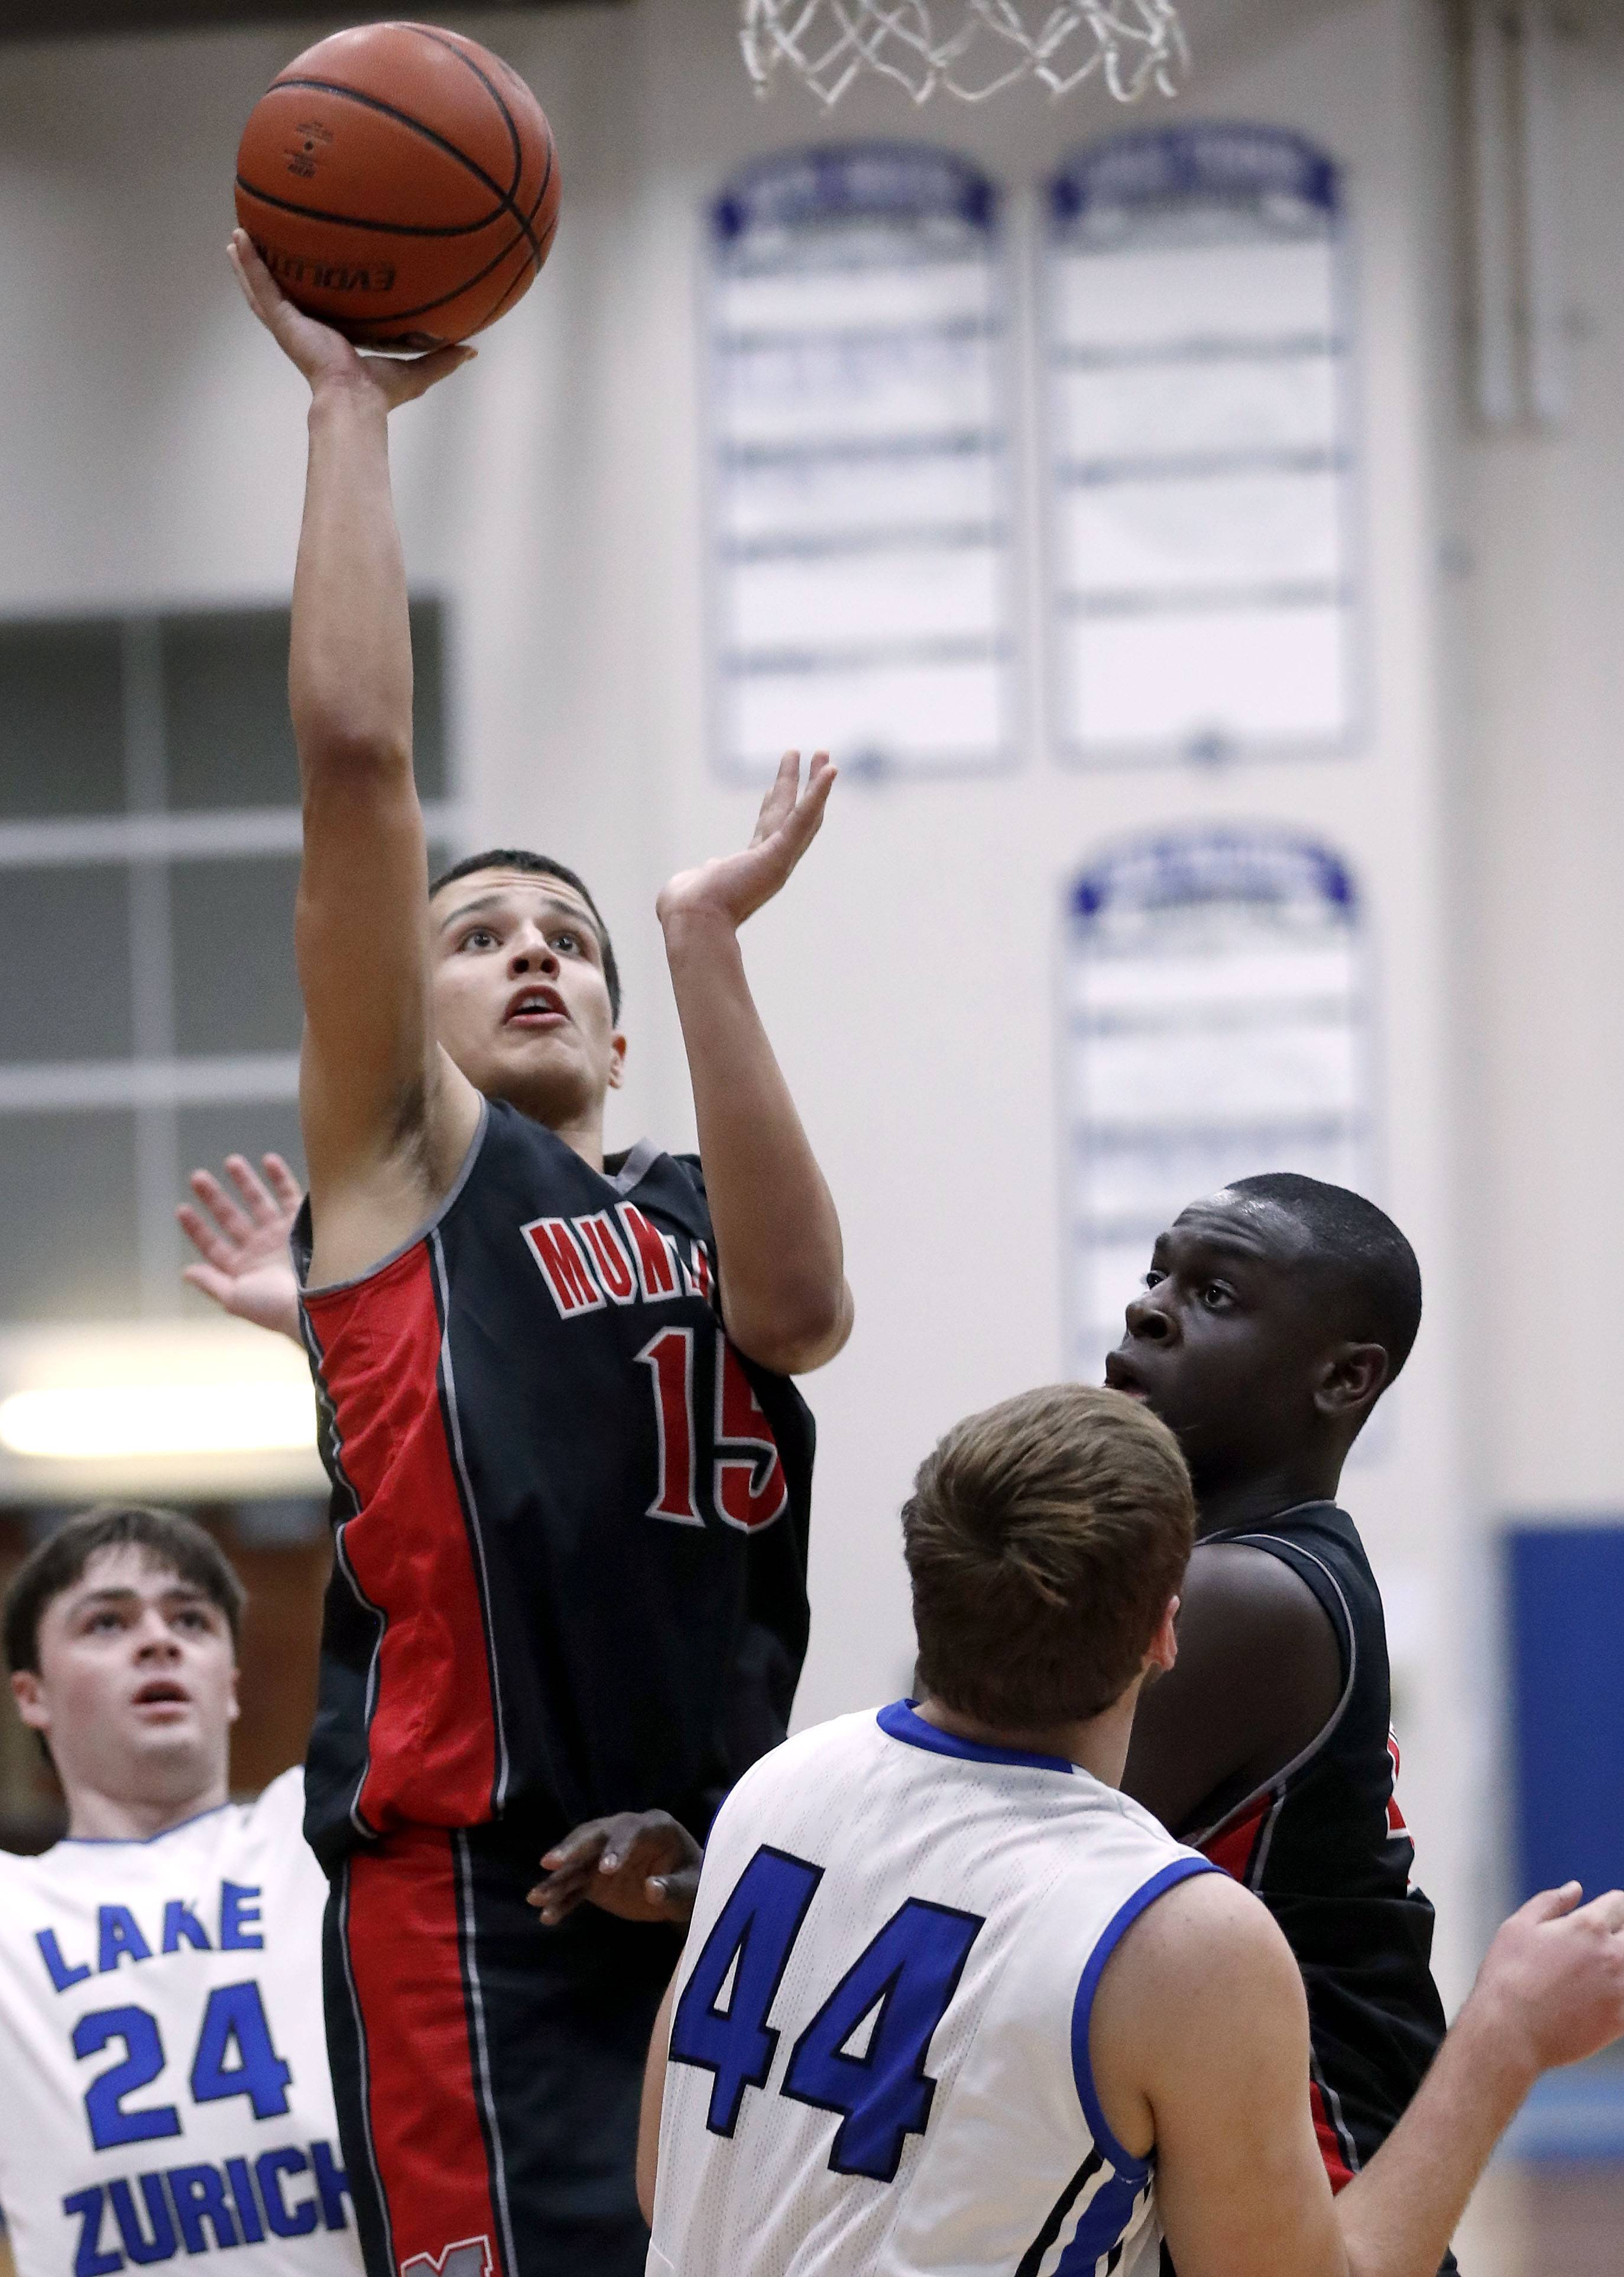 Mundelein's Andrew Gonzalez (15) shoots over Lake Zurich's Nick Marcinkiewicz during their game Tuesday night in Lake Zurich,